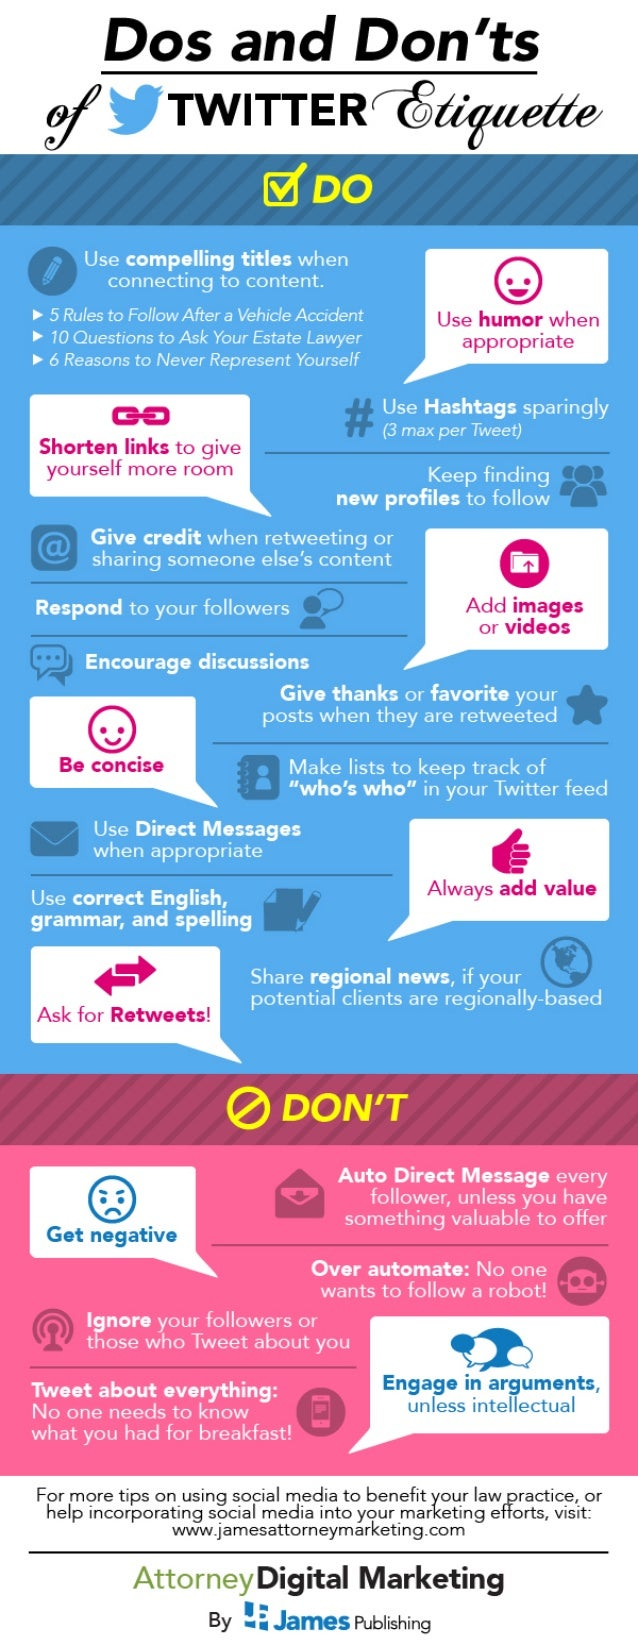 Twitter Etiquette Dos and Don'ts